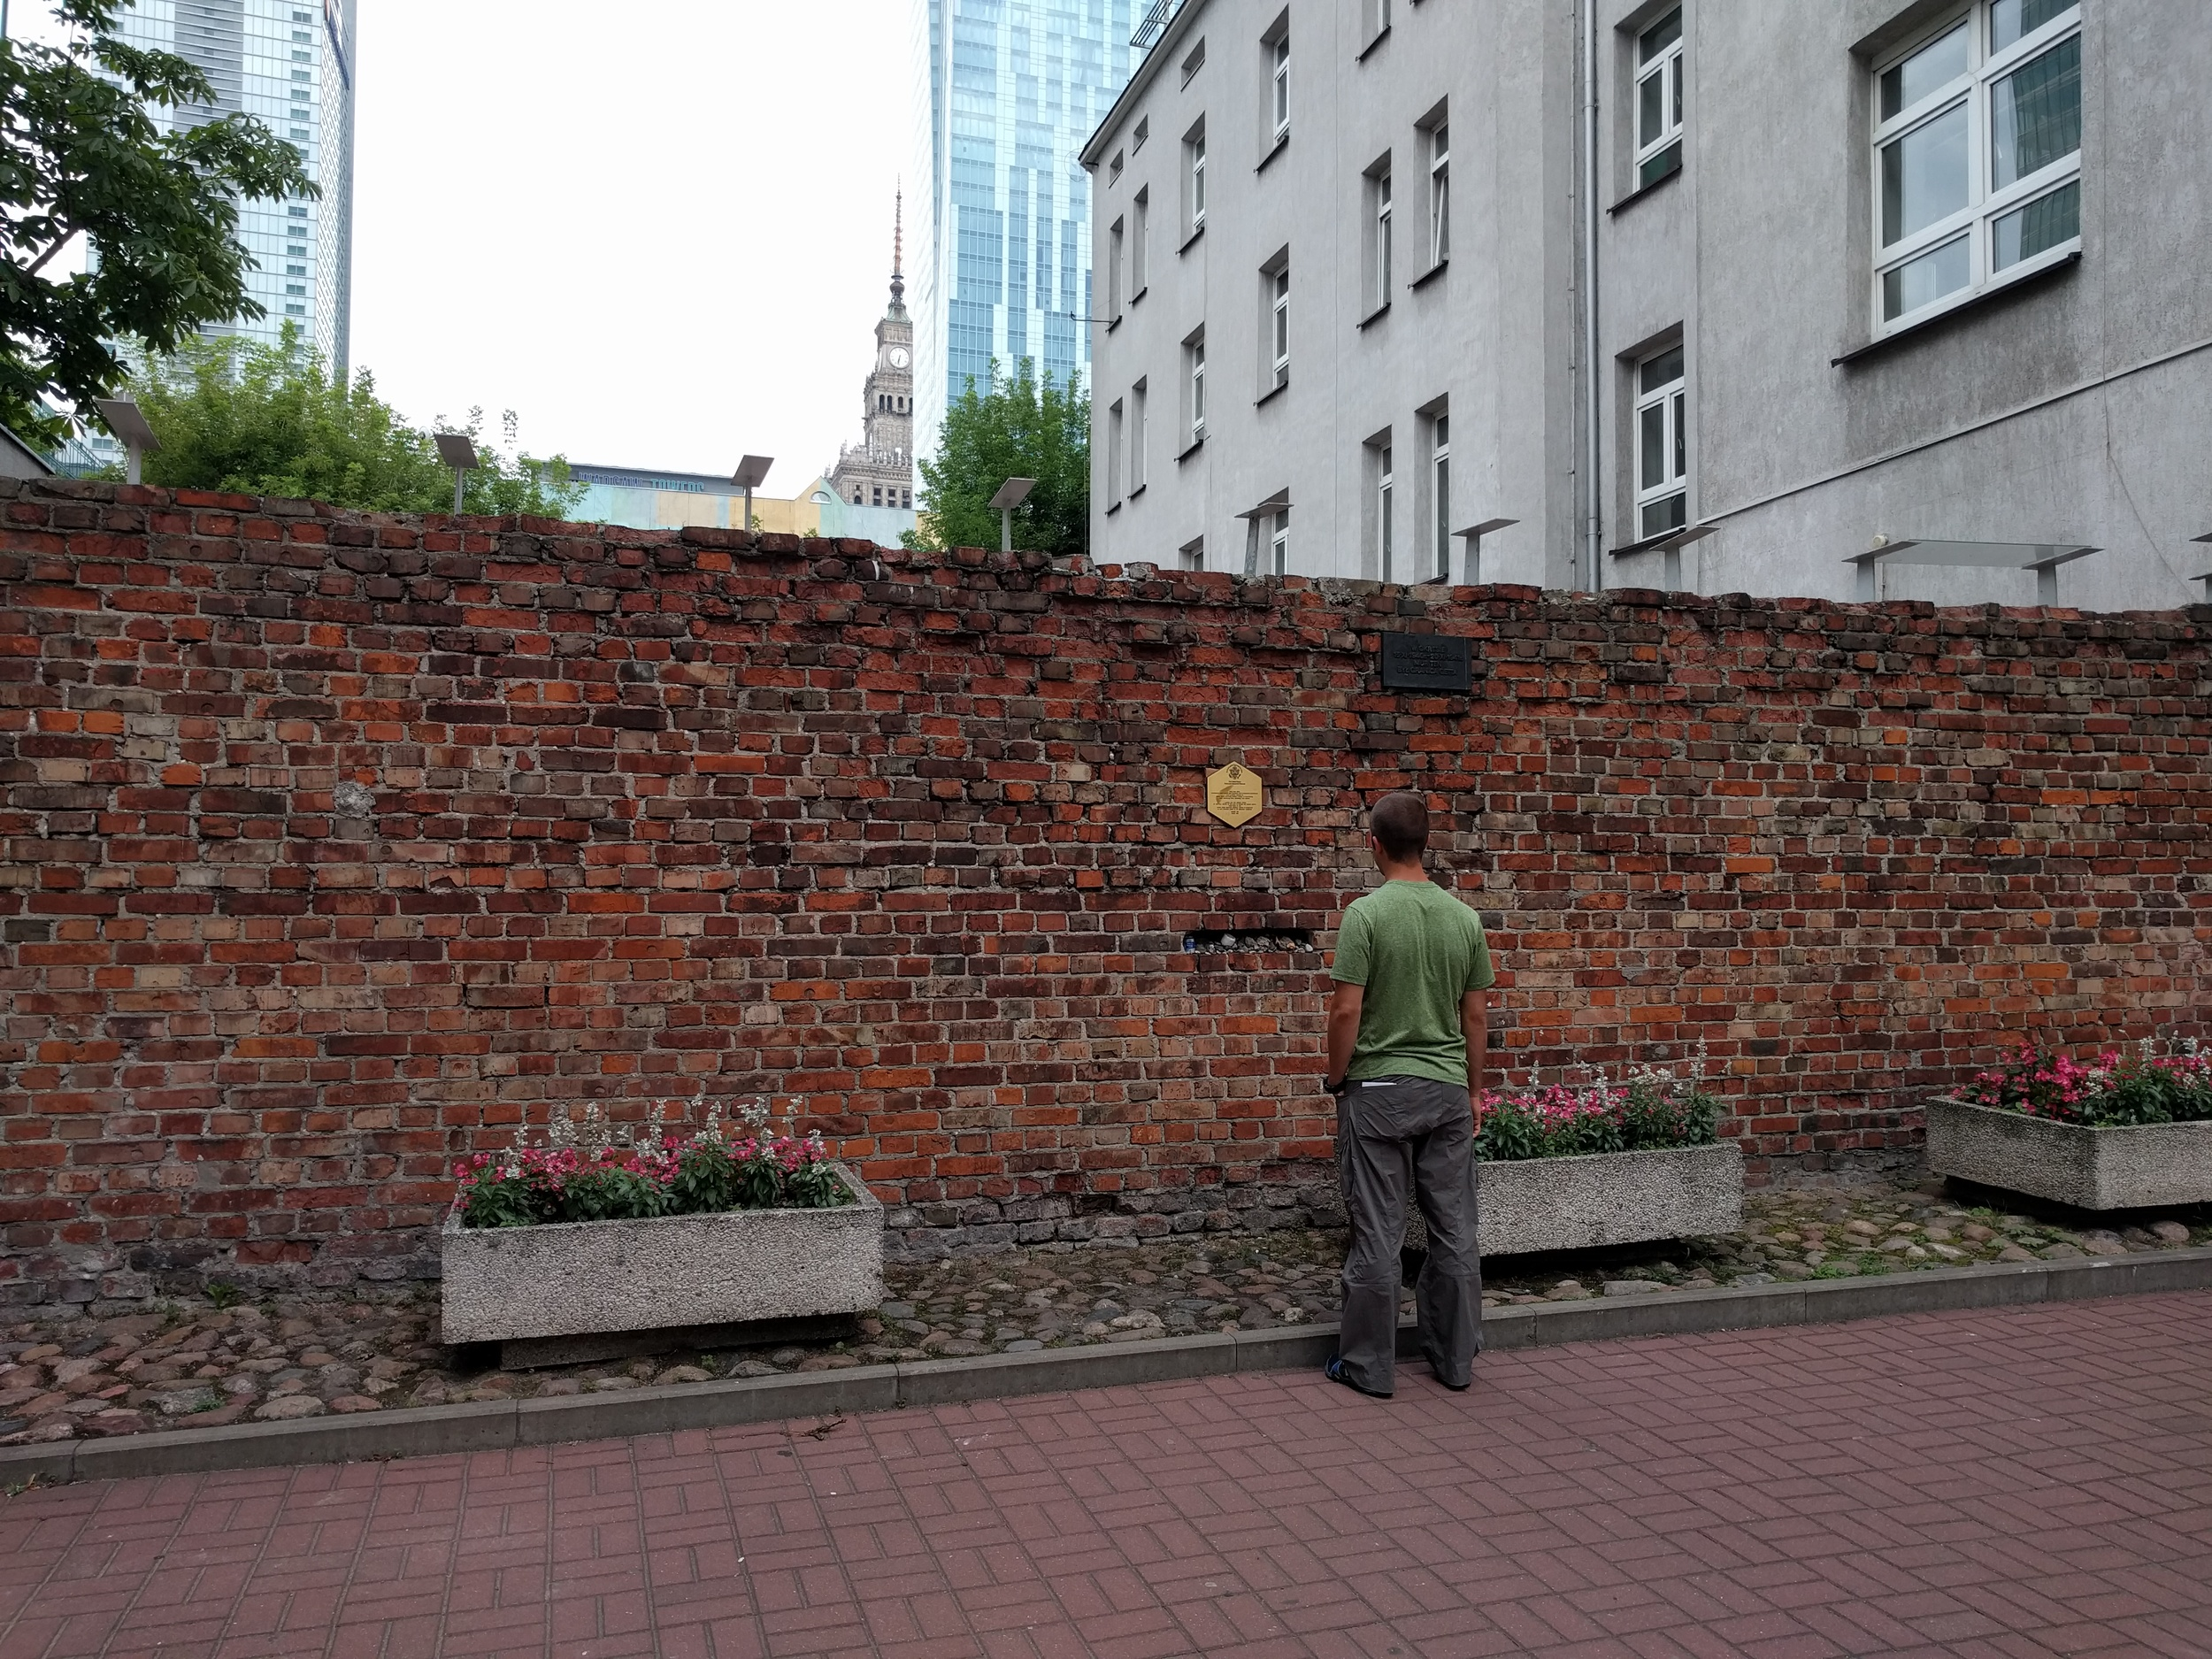 Last standing piece of the Jewish Ghetto wall. Currently located in the middle of an apartment complex.